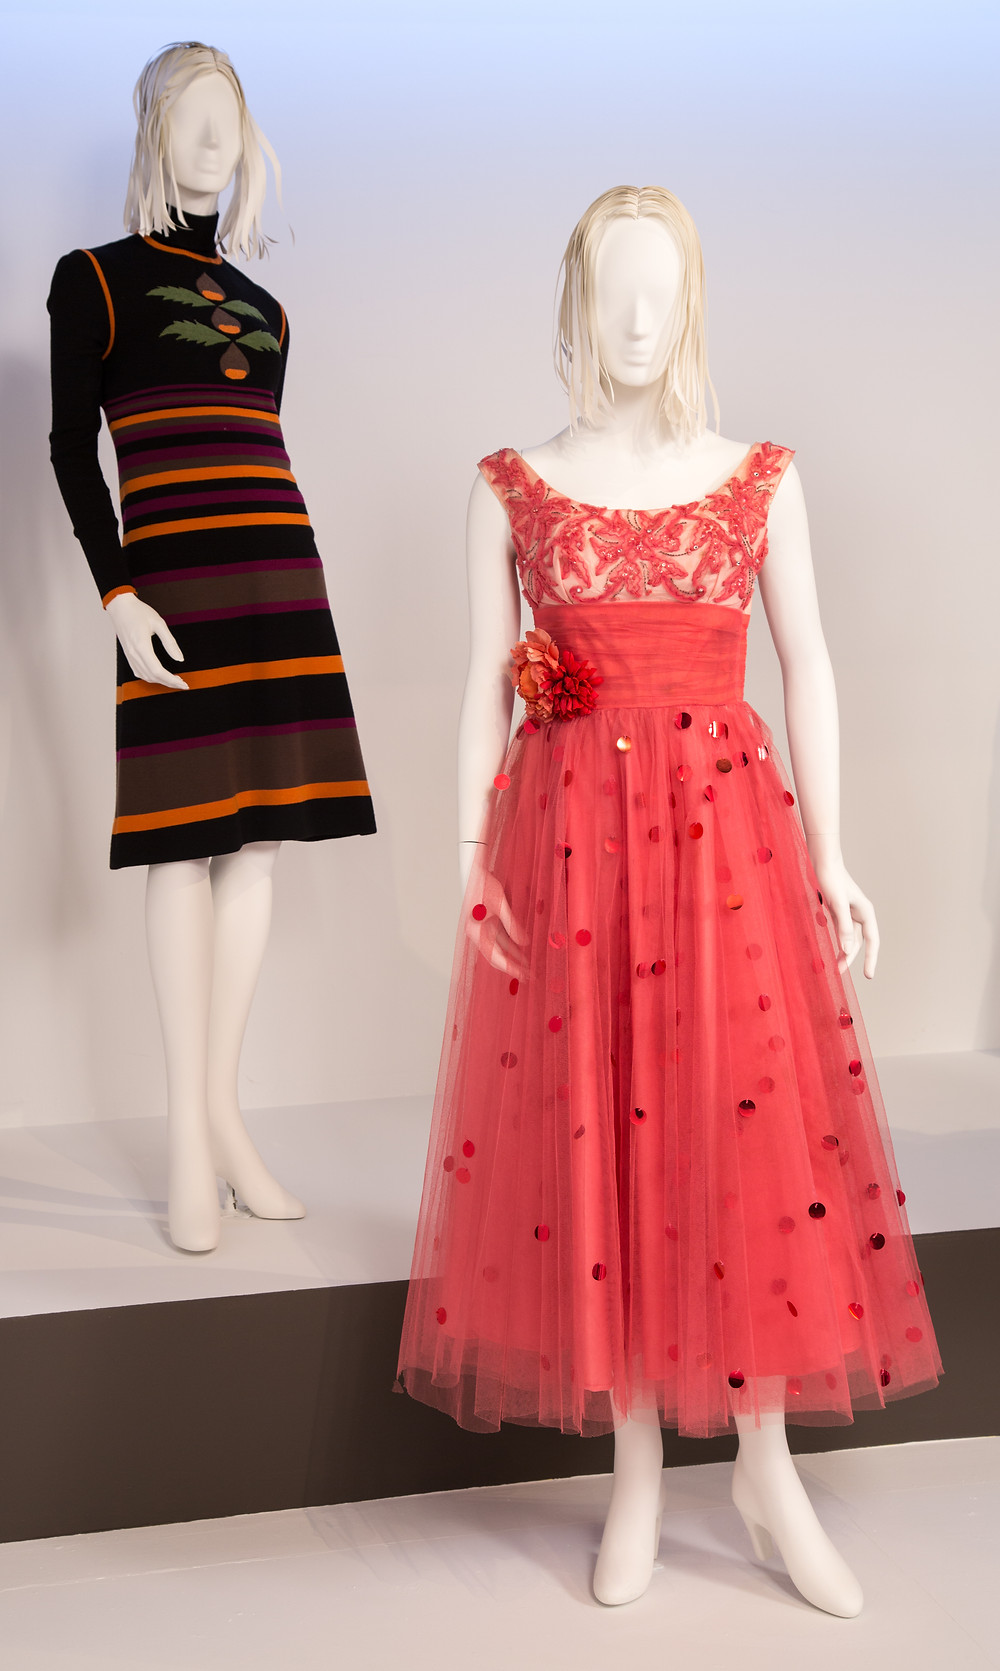 """Lady Bird"" costumes by April Napier. (L to R) Costumes worn by actors: Saoirse Ronan as Christine 'Lady Bird' McPherson, Saoirse Ronan as Christine 'Lady Bird' McPherson"